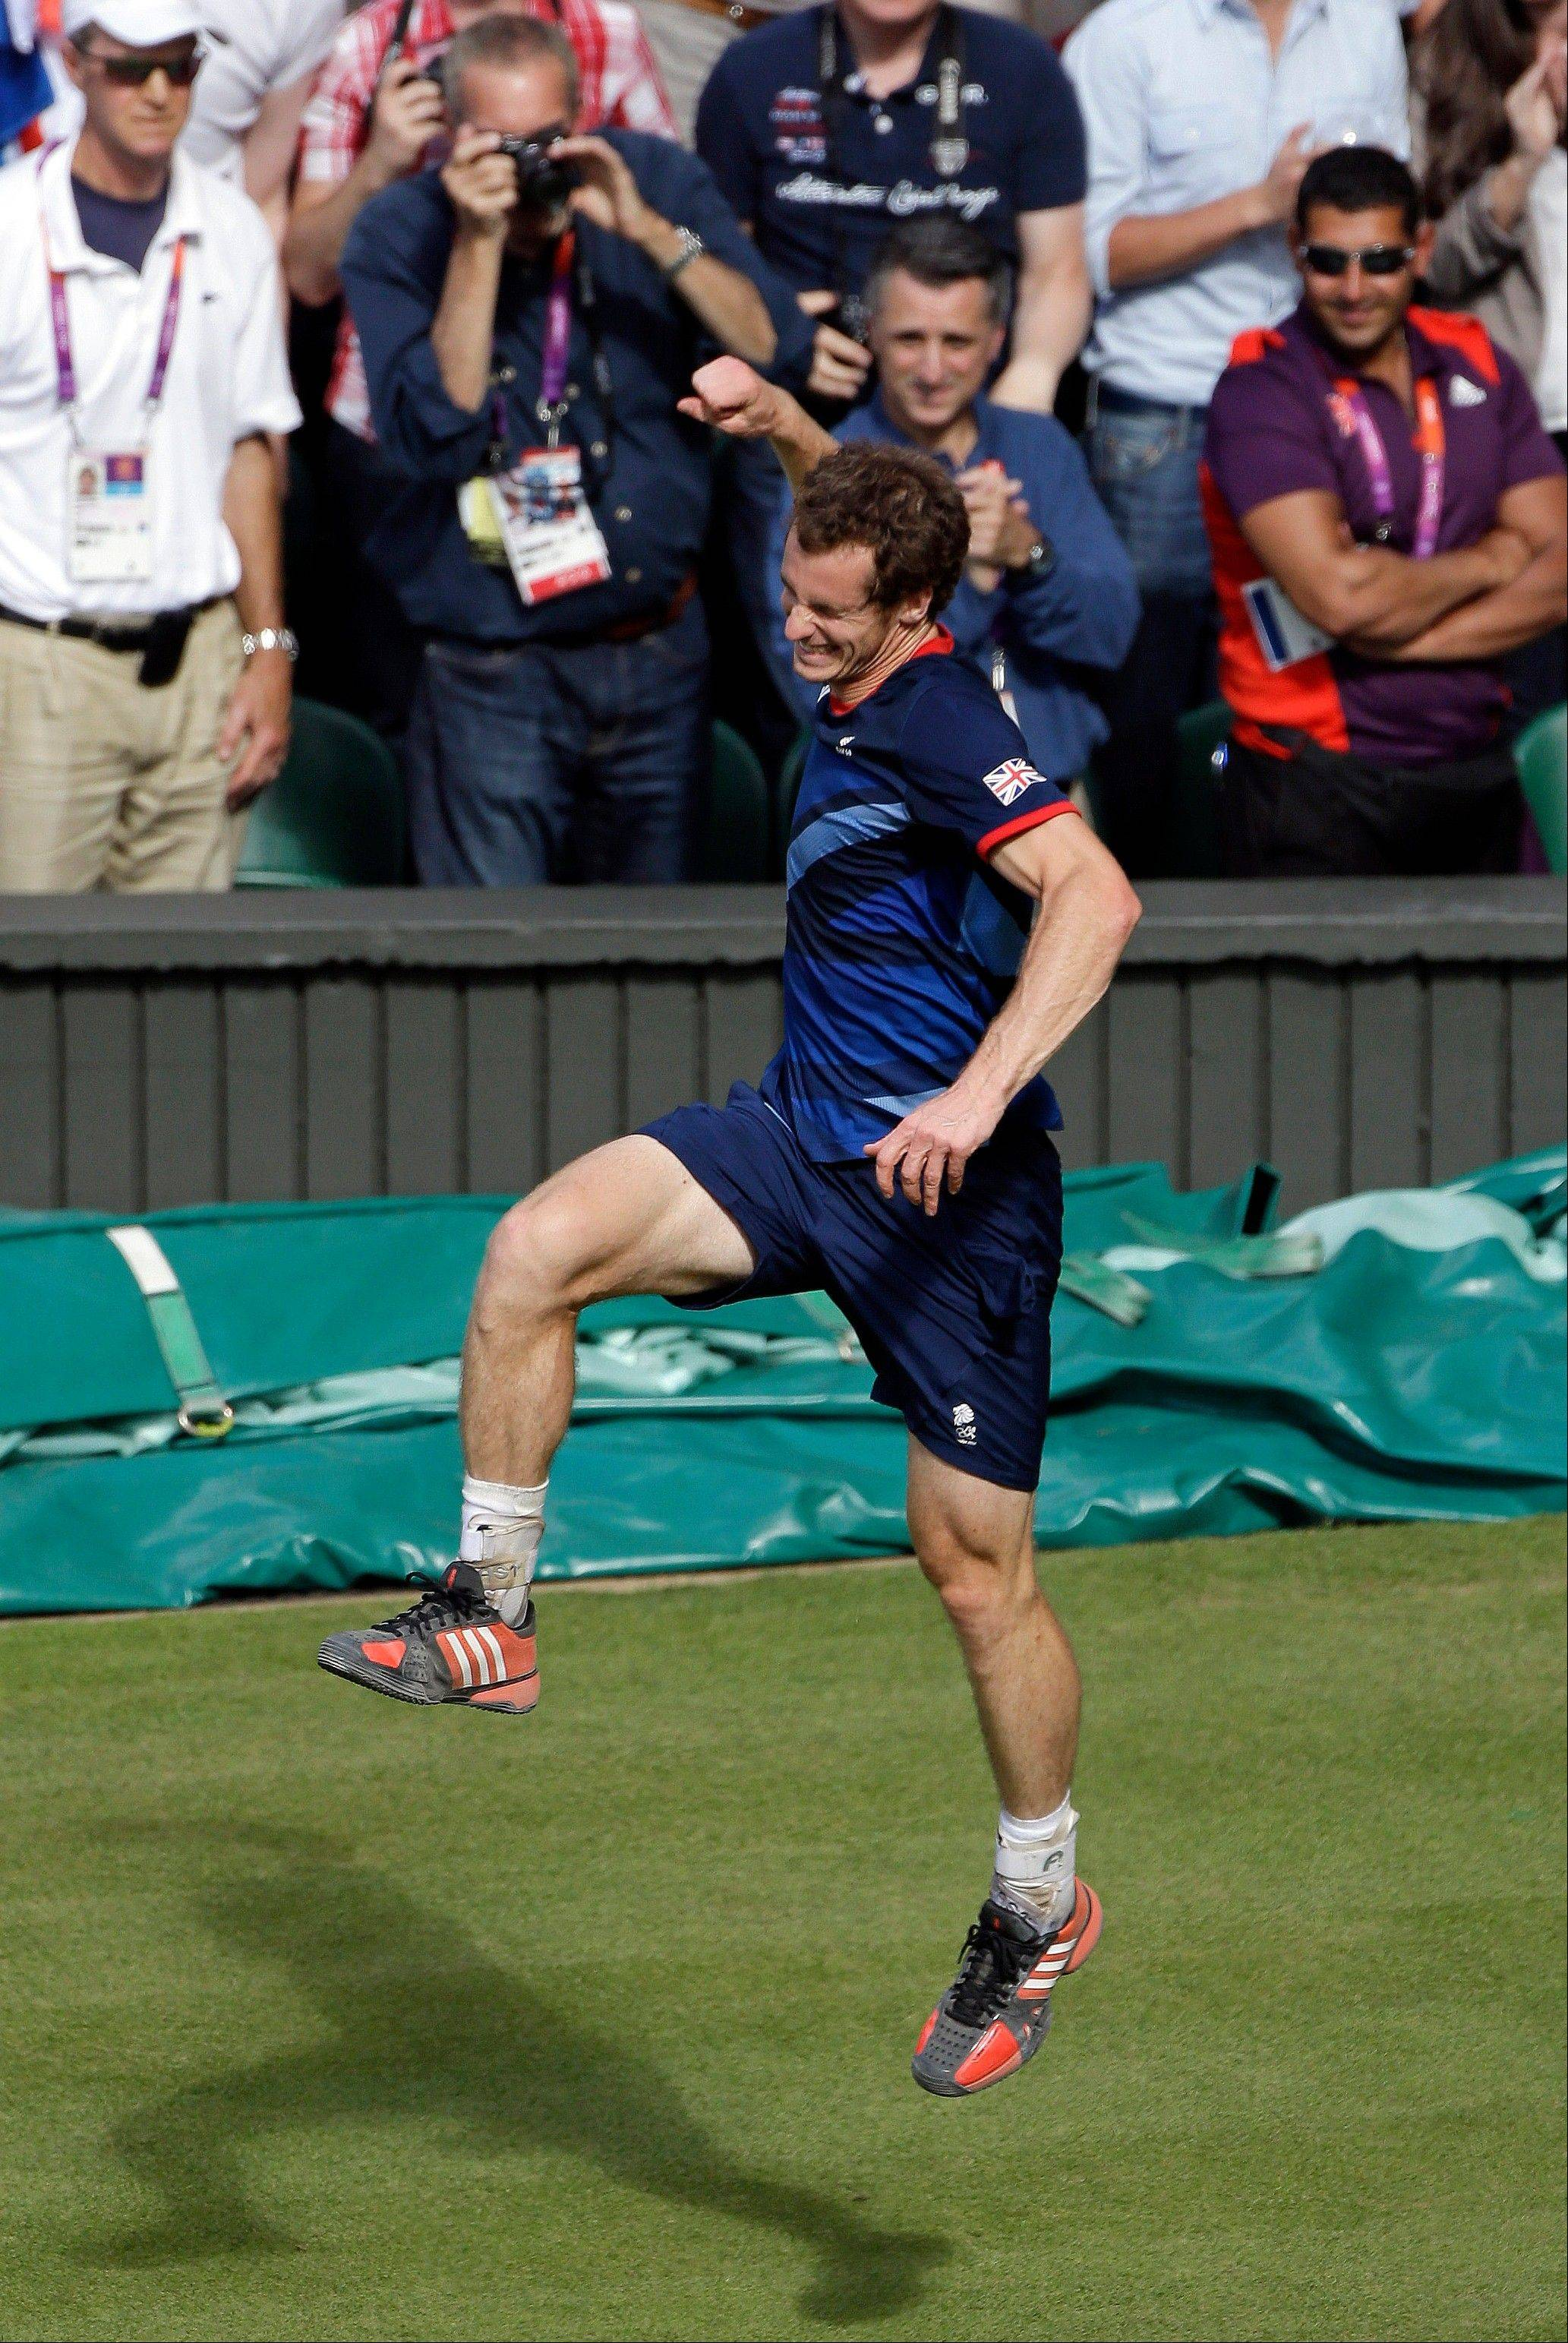 Andy Murray of Great Britain celebrates after defeating Roger Federer of Switzerland in the men's singles gold medal match at the All England Lawn Tennis Club at Wimbledon, in London, at the 2012 Summer Olympics, Sunday, Aug. 5, 2012.